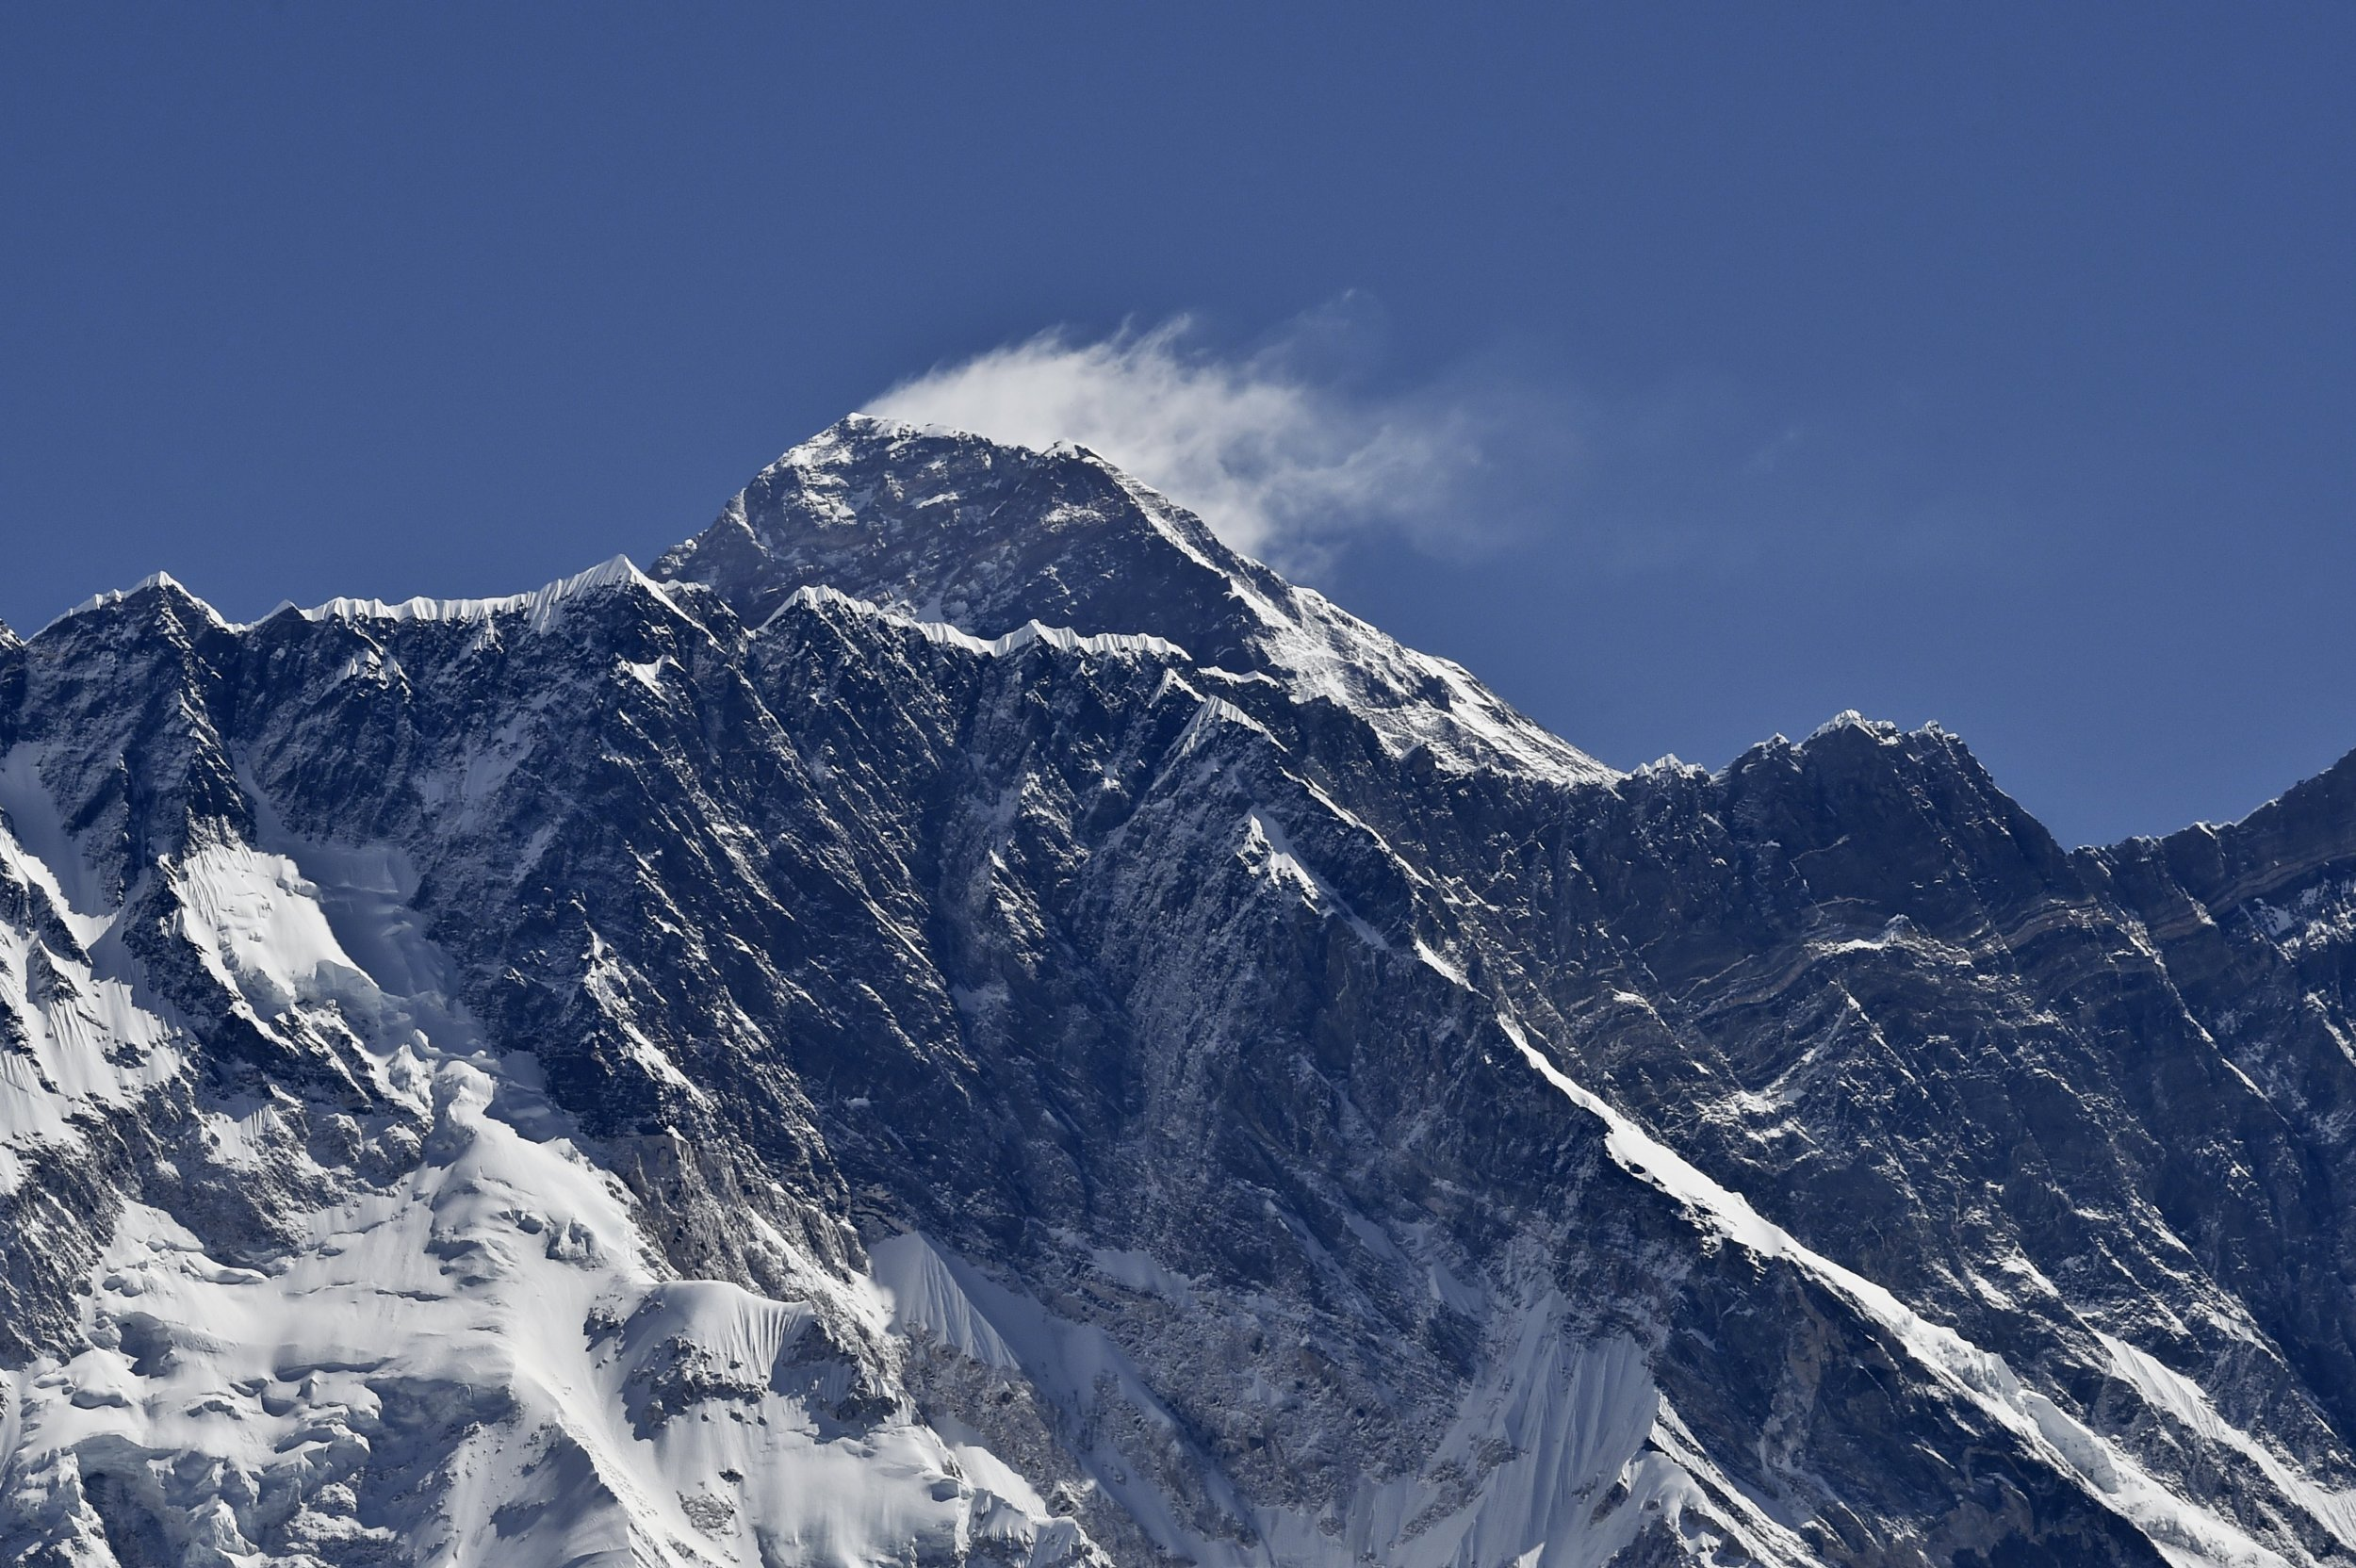 Nepalese army drains dangerous mount everest glacial lake for Top pictures of the day